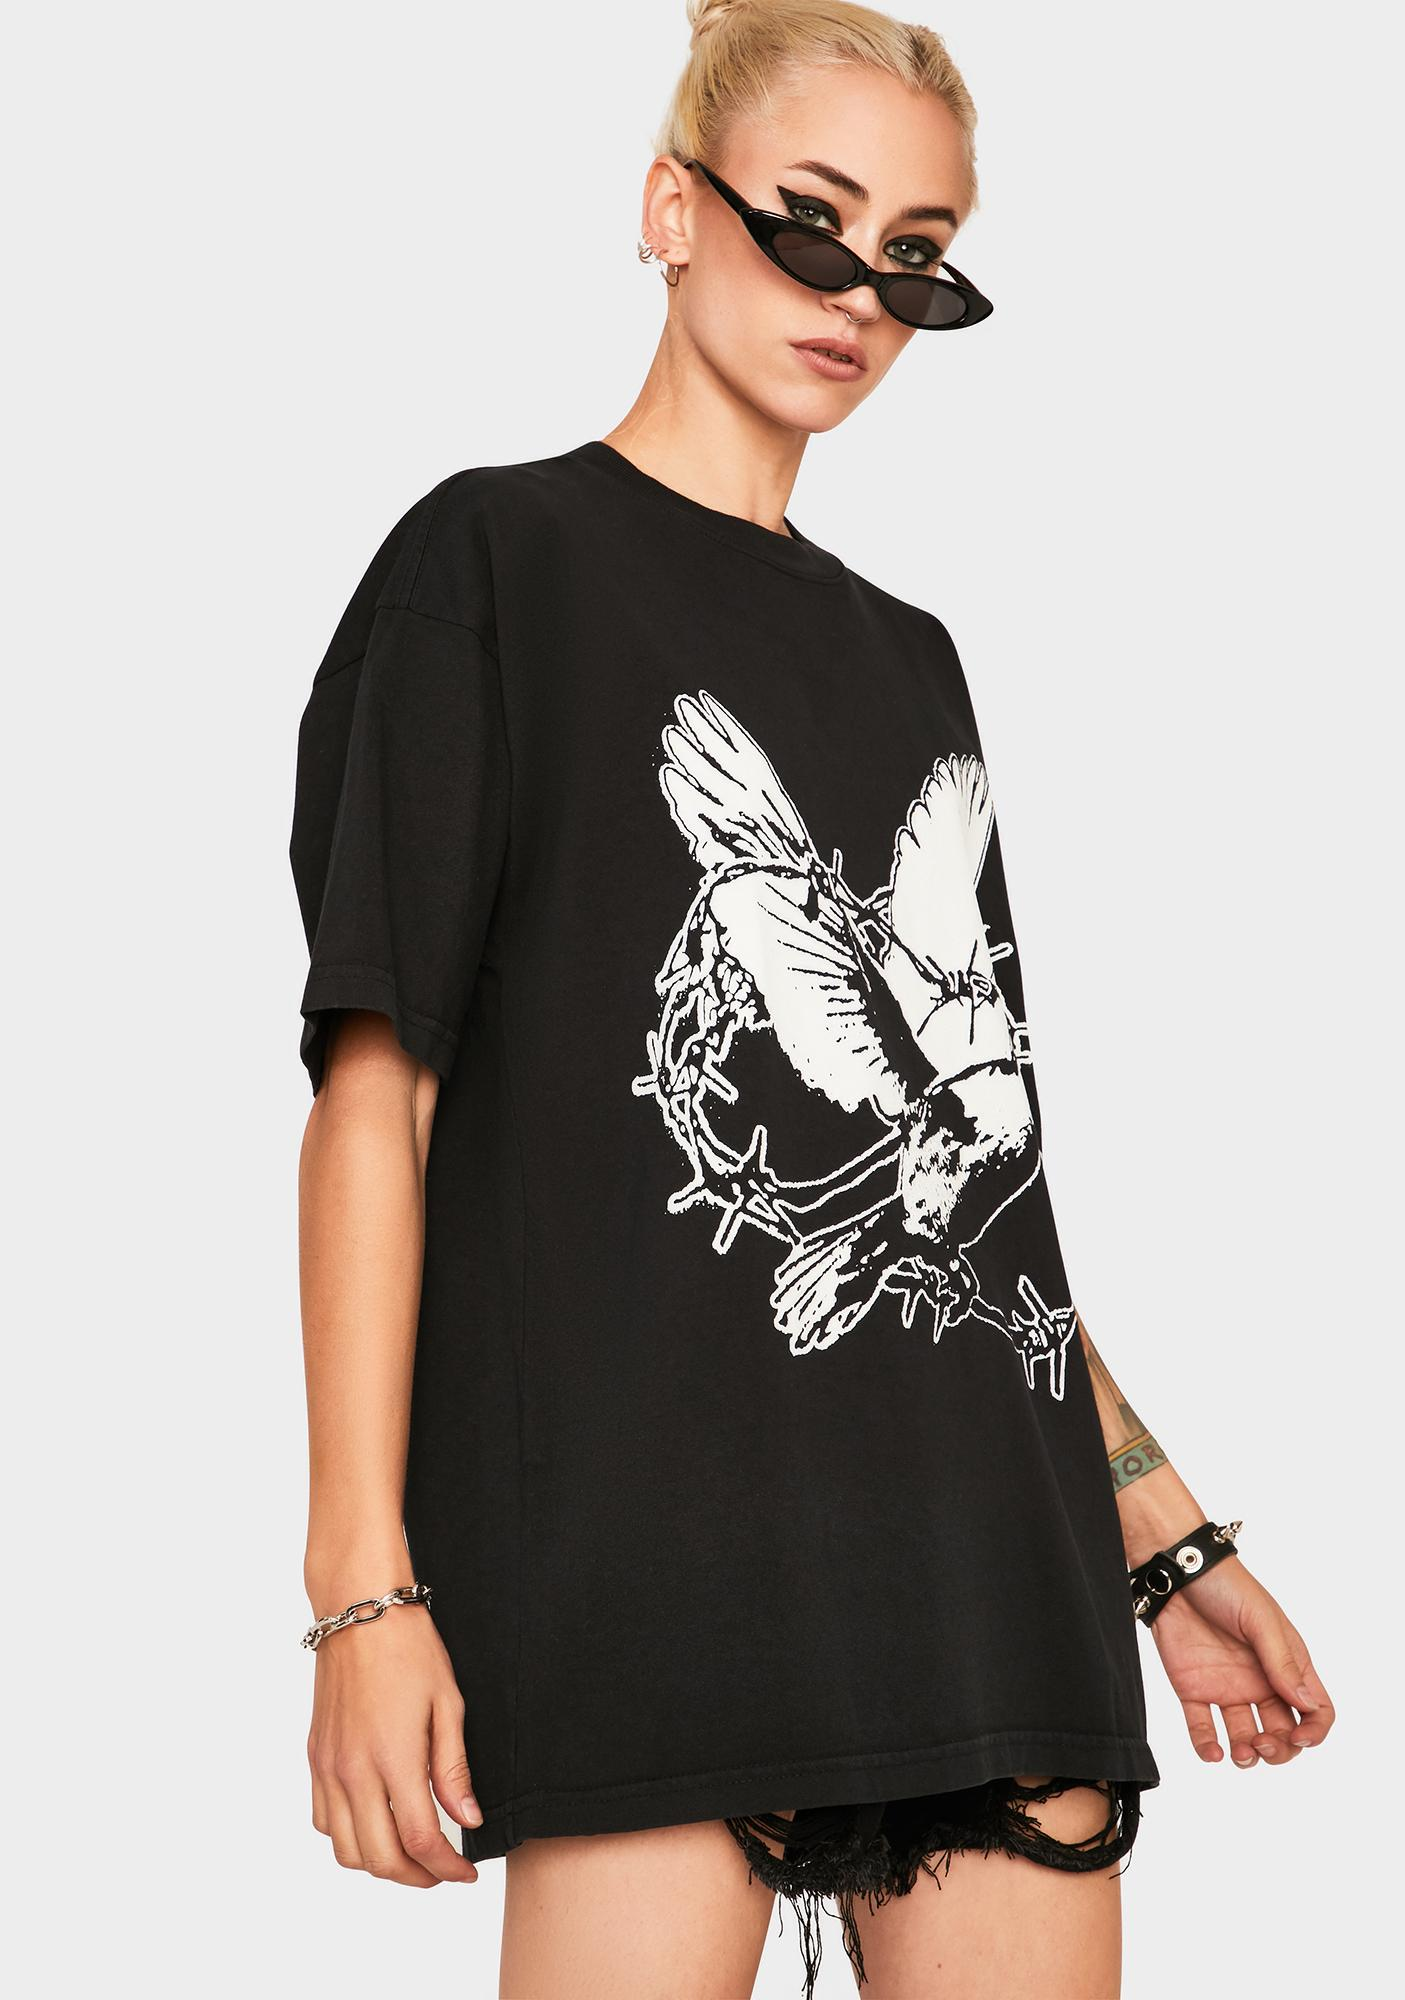 Obey But We Still Fight Graphic Tee